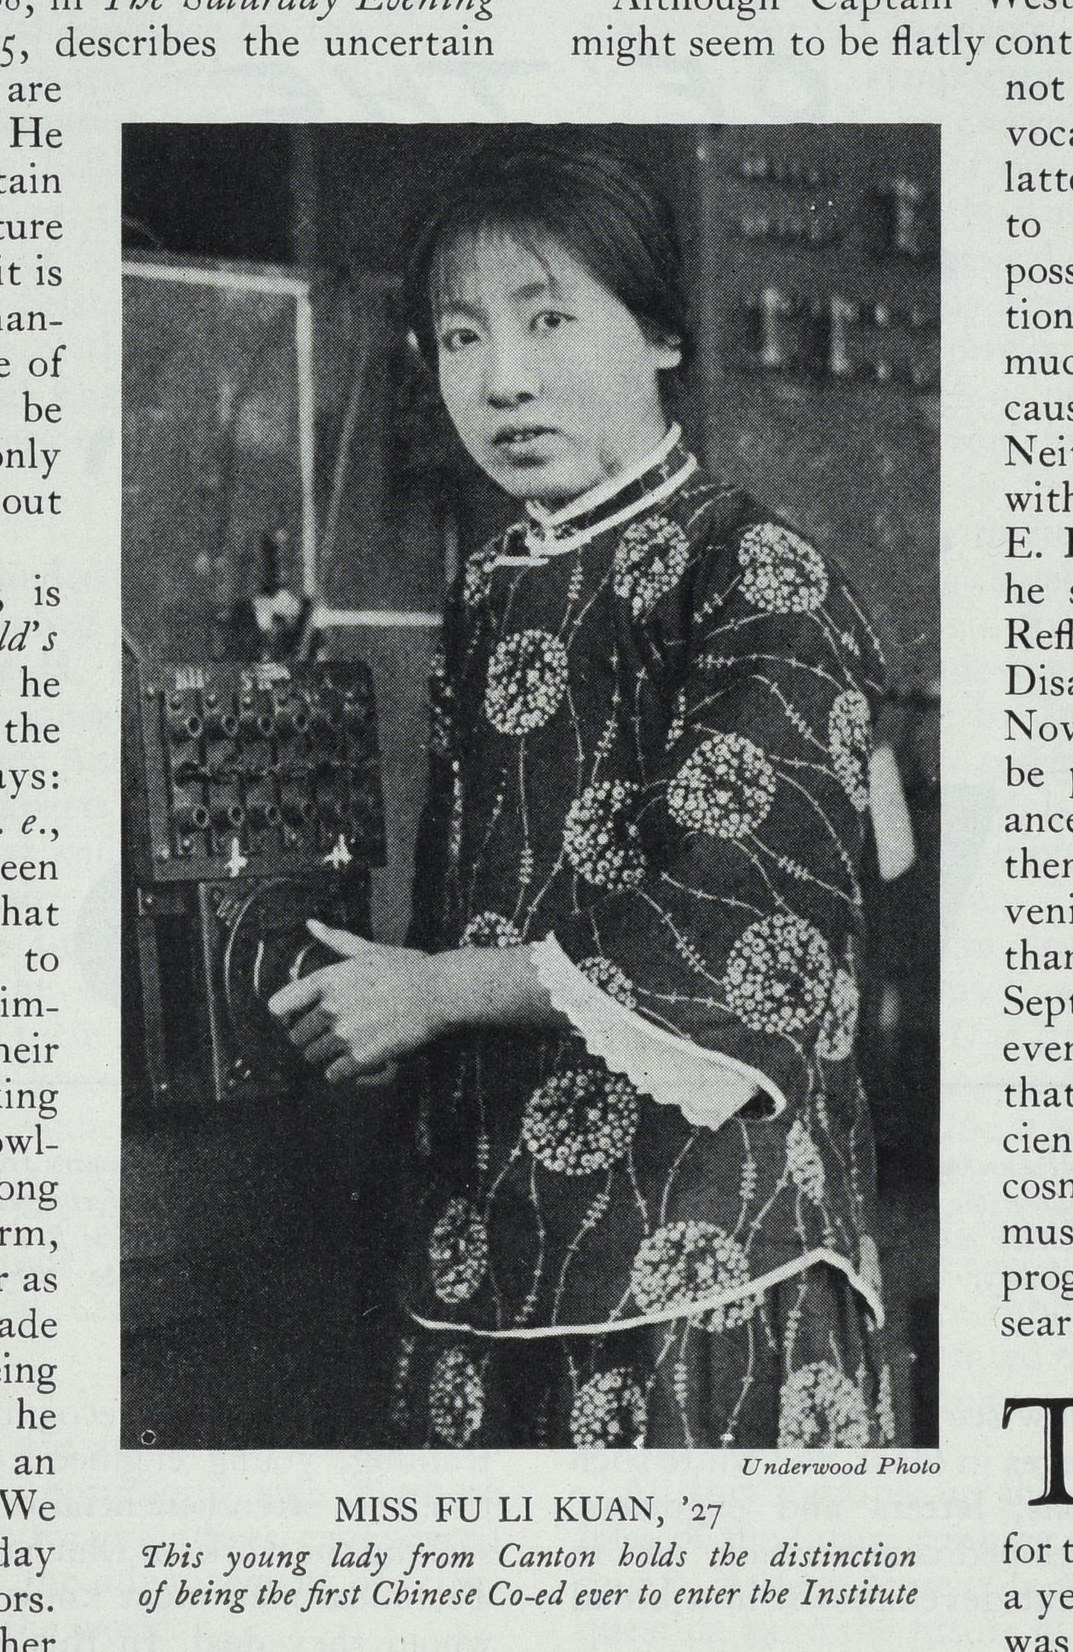 Lee at MIT's radio experiment station, Technology Review, vol 28, Feb 1926, 193. Image courtesy MIT Archives and Special Collections.